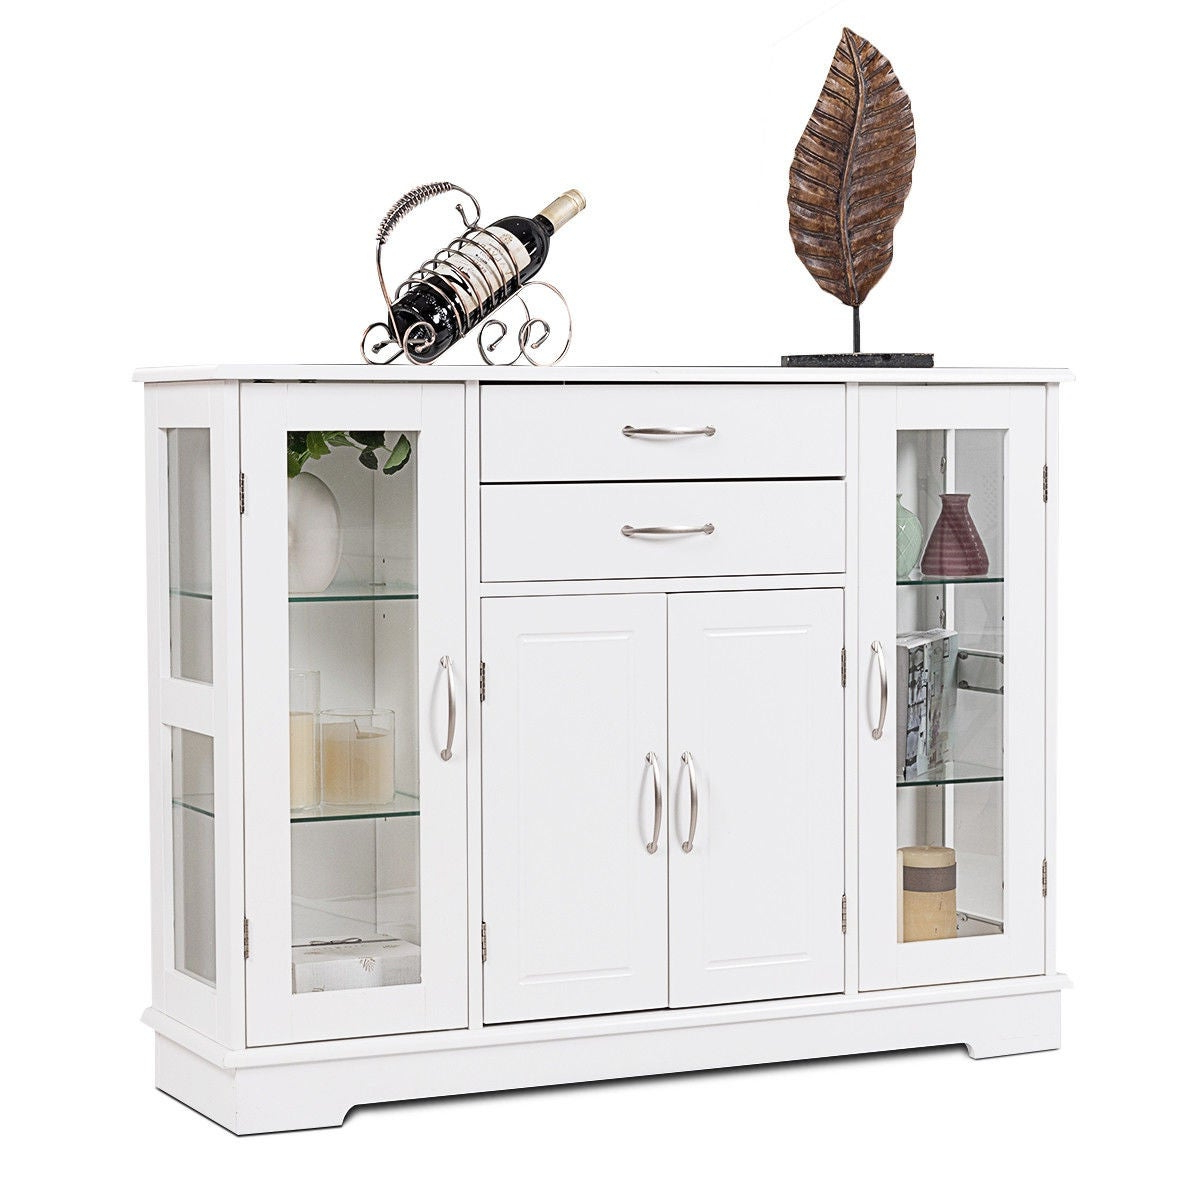 Costway Buffet Storage Cabinet Console Cupboard W/glass Door Drawers  Kitchen Dining Room Intended For Contemporary Wooden Buffets With One Side Door Storage Cabinets And Two Drawers (View 2 of 20)